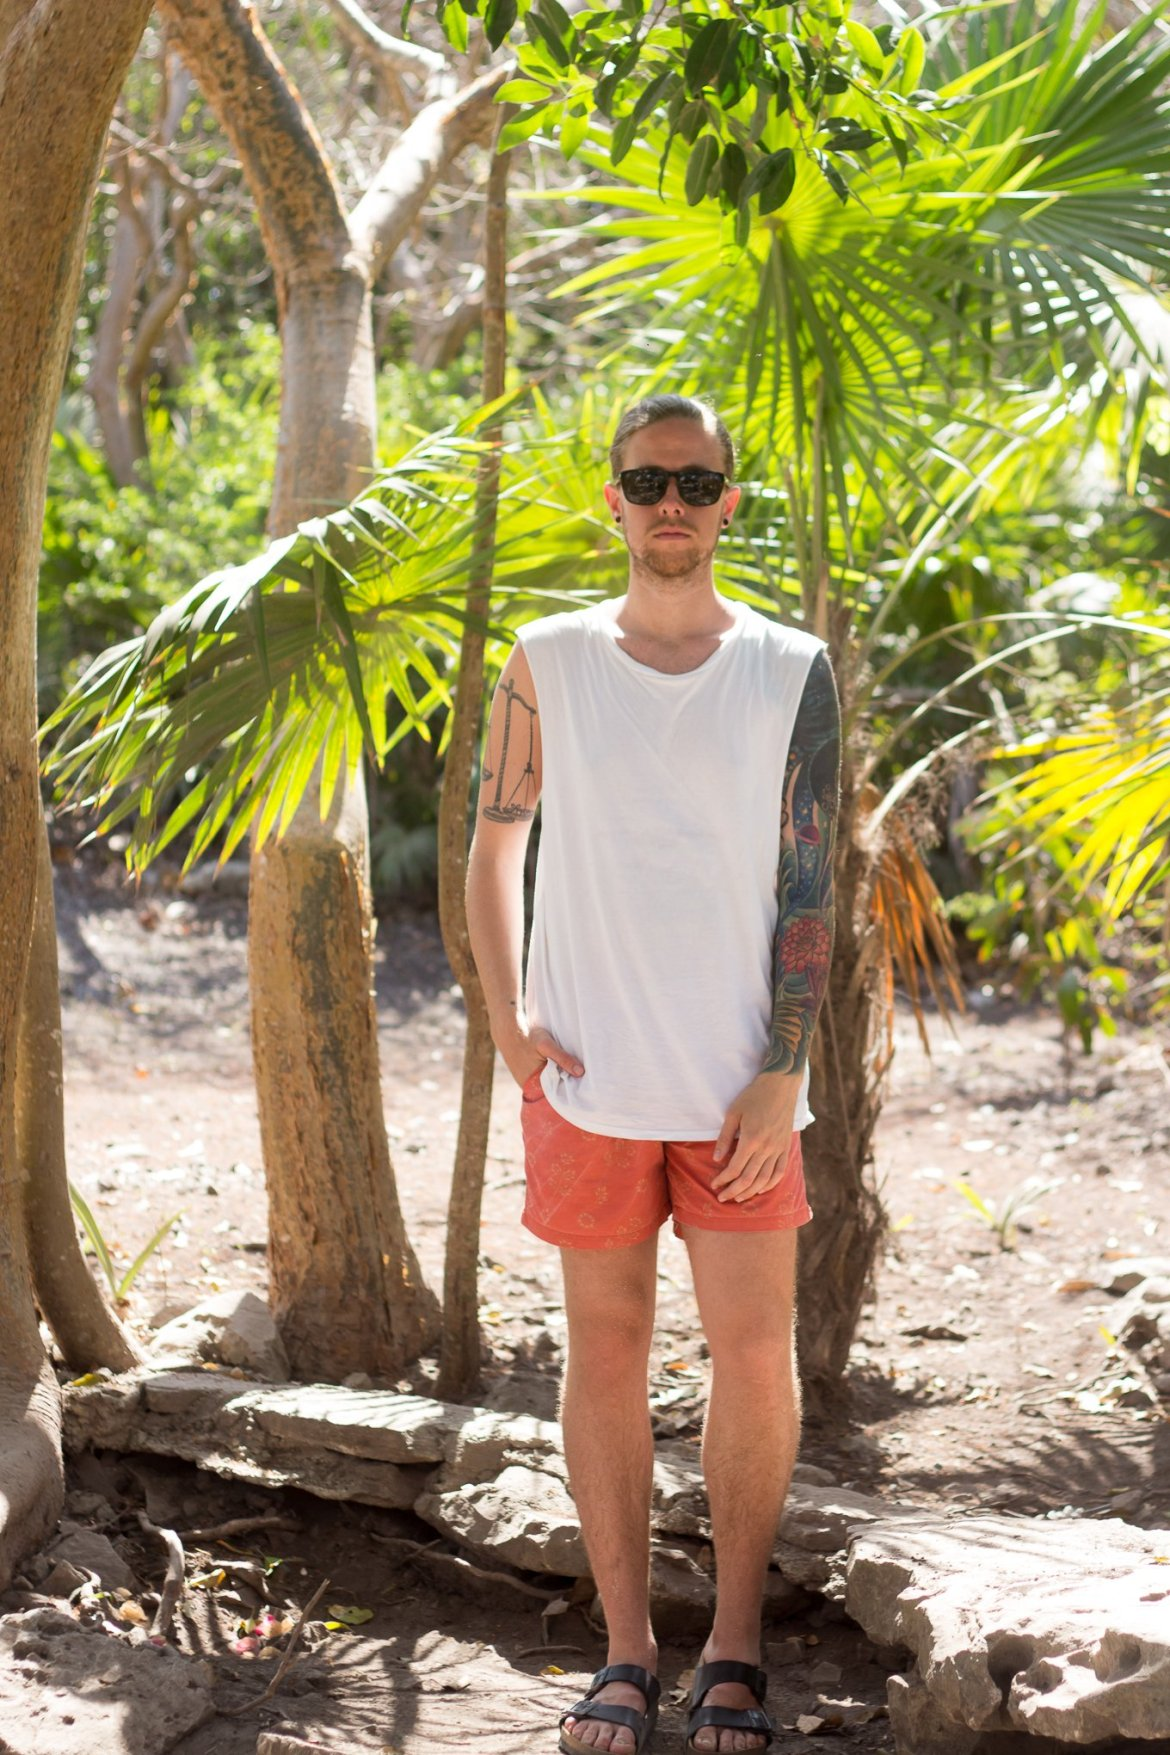 The Kentucky Gent in Tulum, Mexico wearing Katin and Topman.